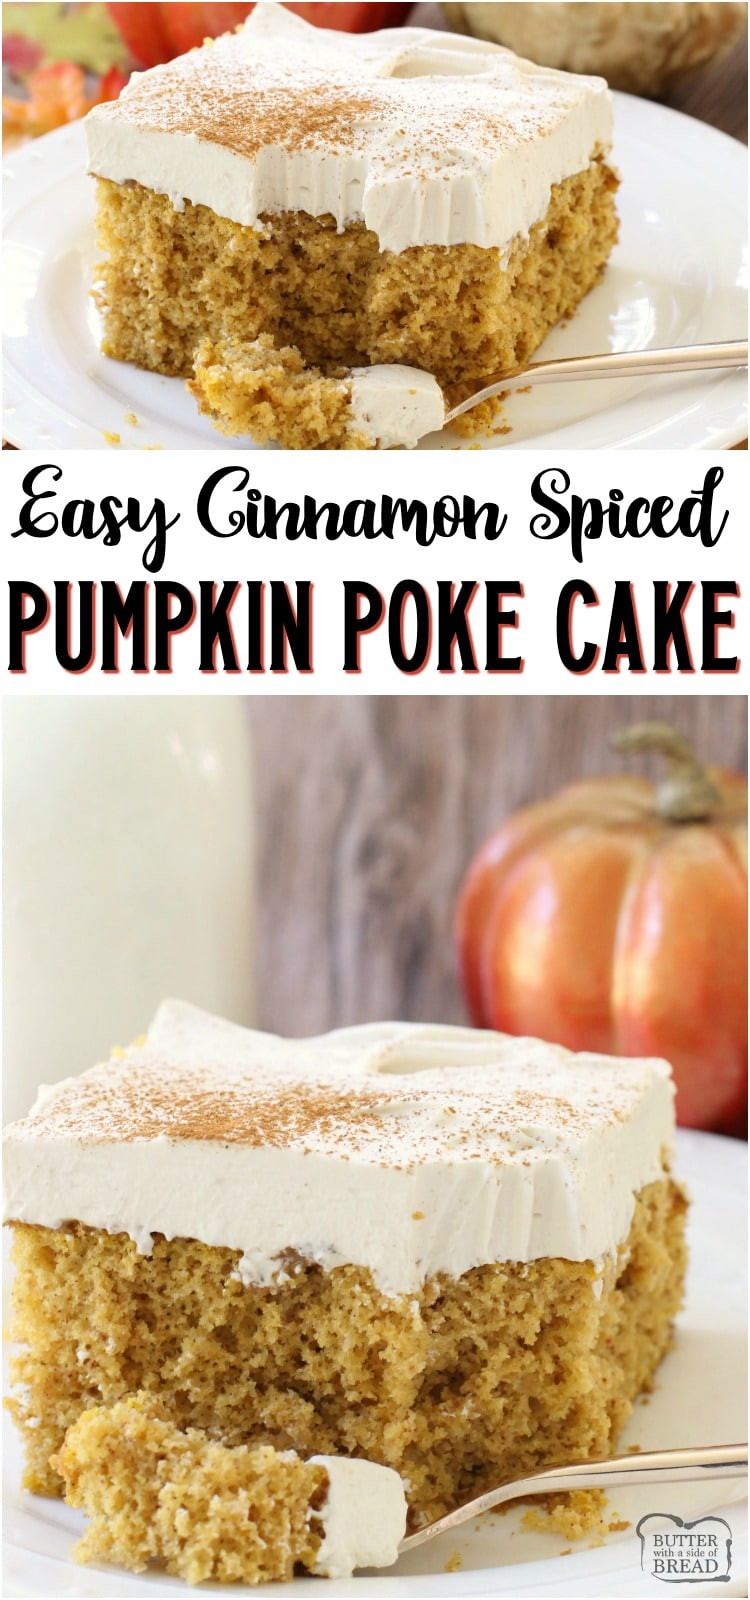 Pumpkin Poke Cake takes an ordinary cake mix and turns it into this deliciously festive Fall treat filled with pumpkin, cinnamon, and nutmeg.